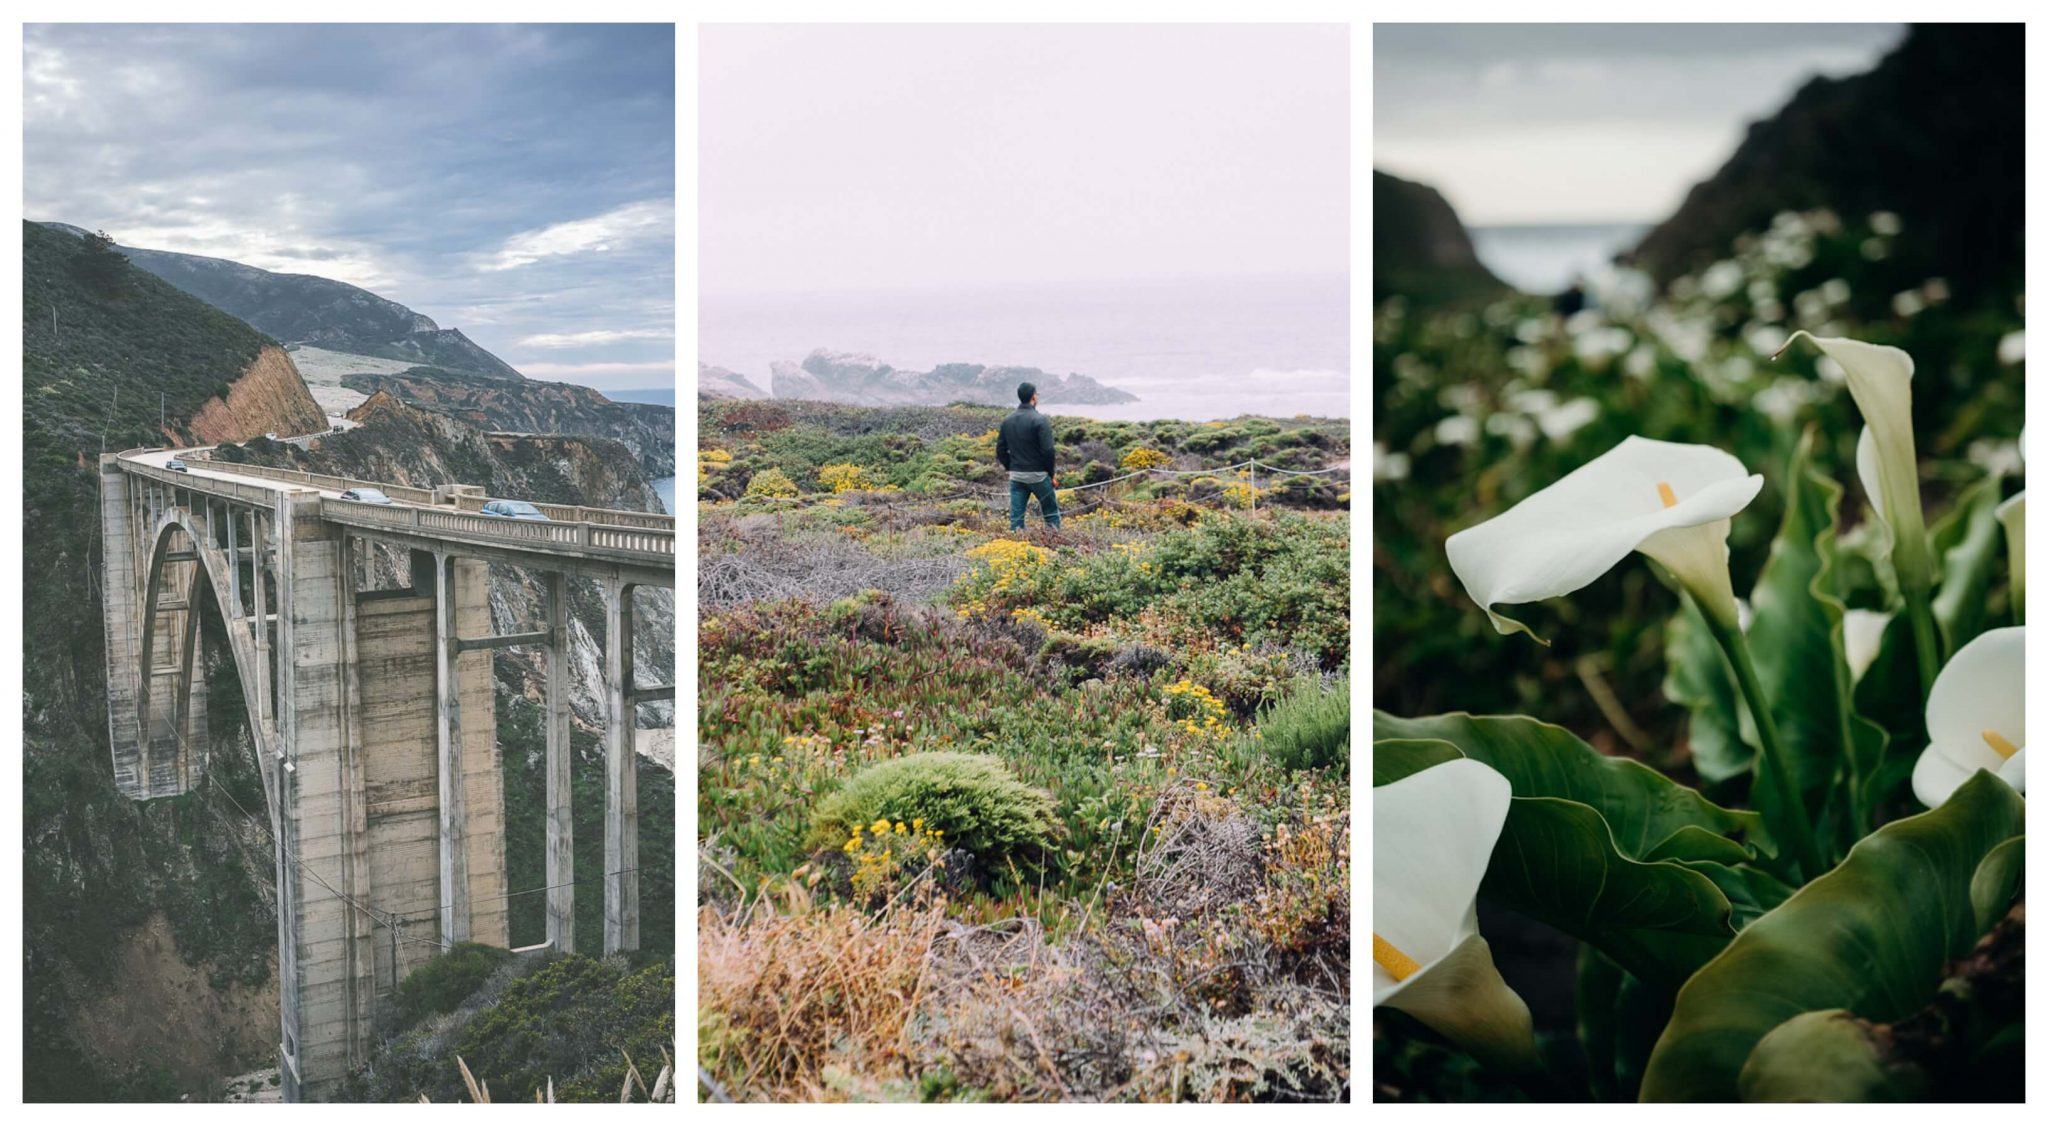 Things to do on weekend getaway to Central coast: drive down Big Sur